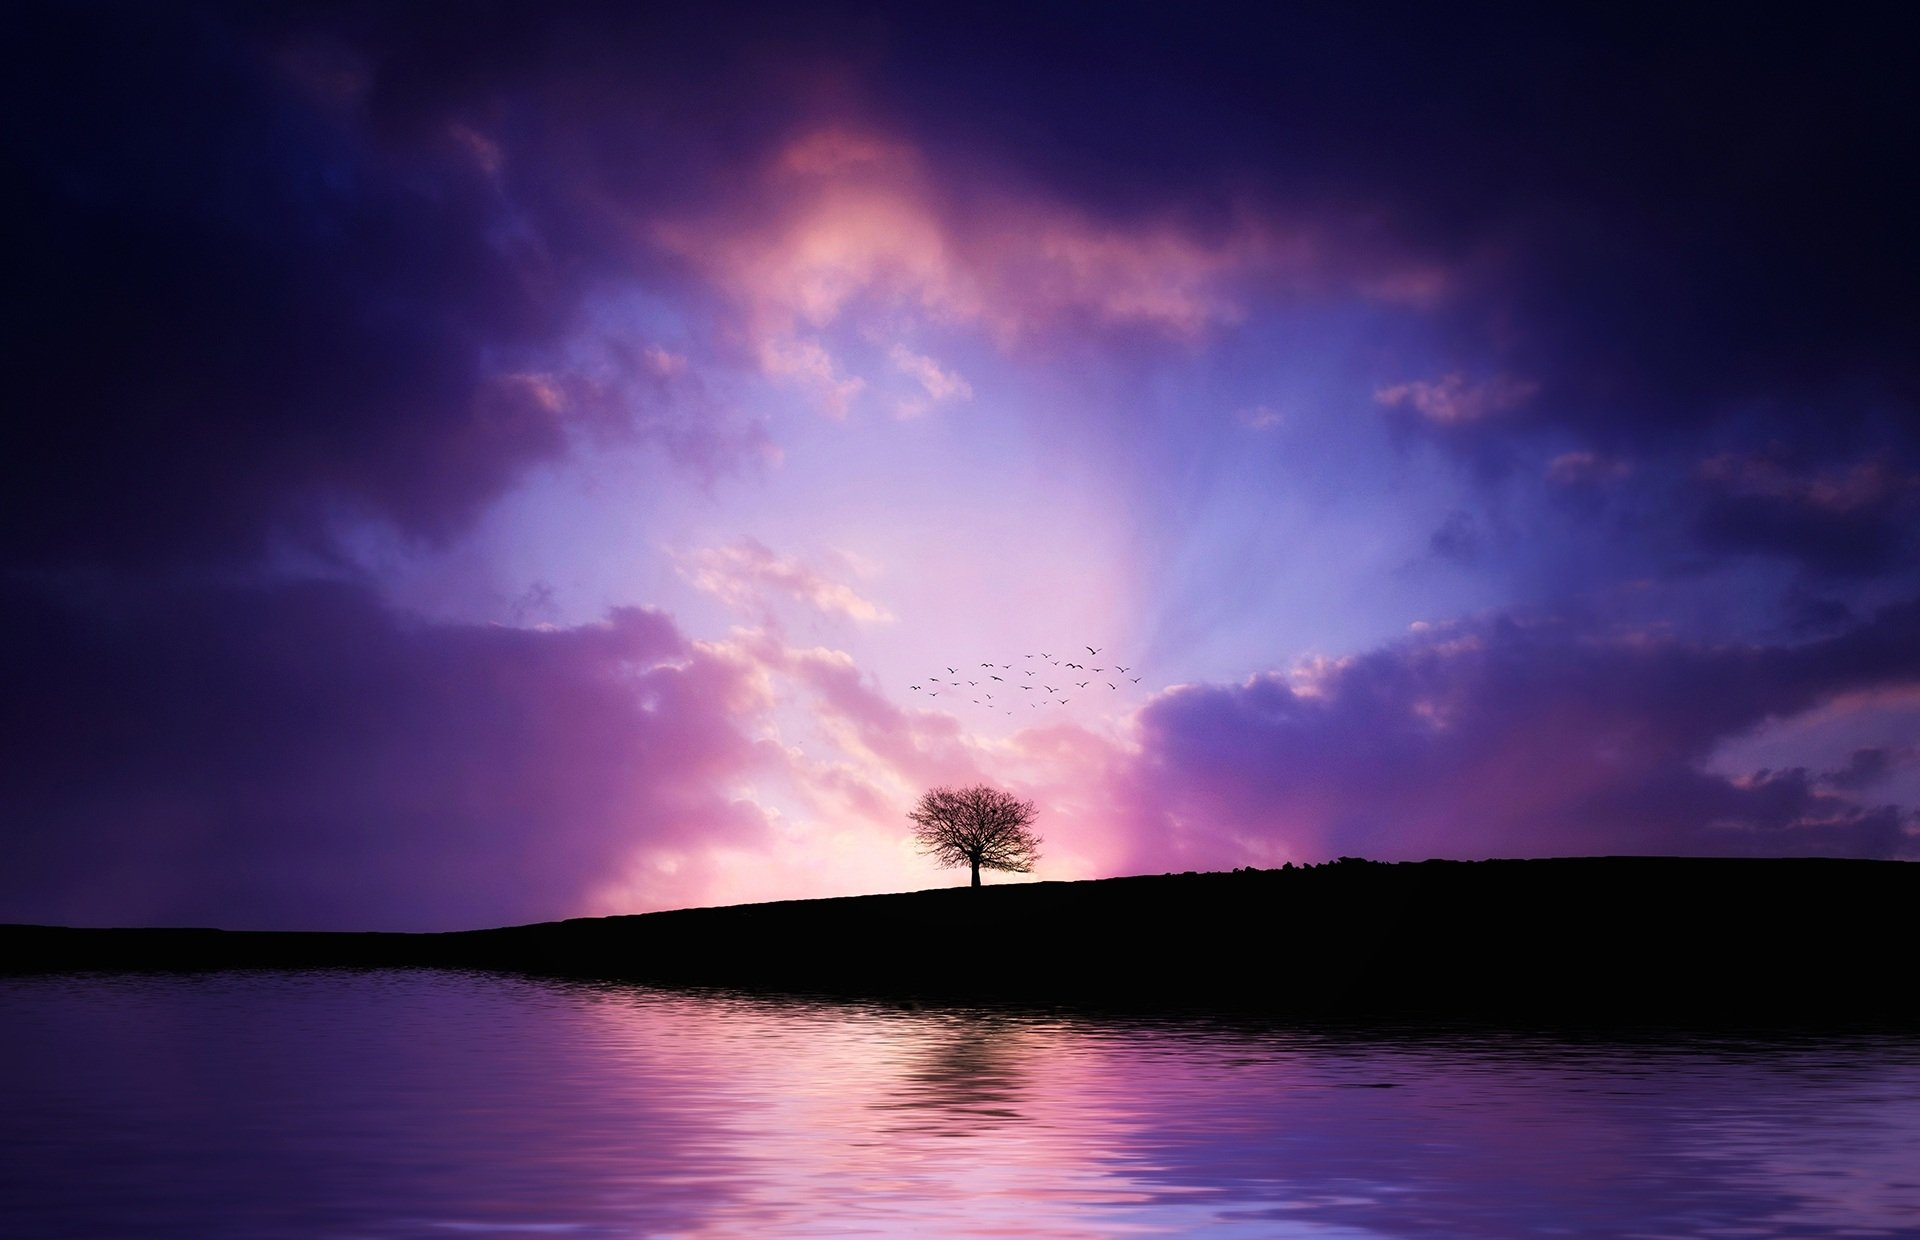 Earth - Tree  Lonely Tree Colors Sky Earth Cloud Light Bird Nature Artistic Purple Sunset Silhouette Lake Wallpaper